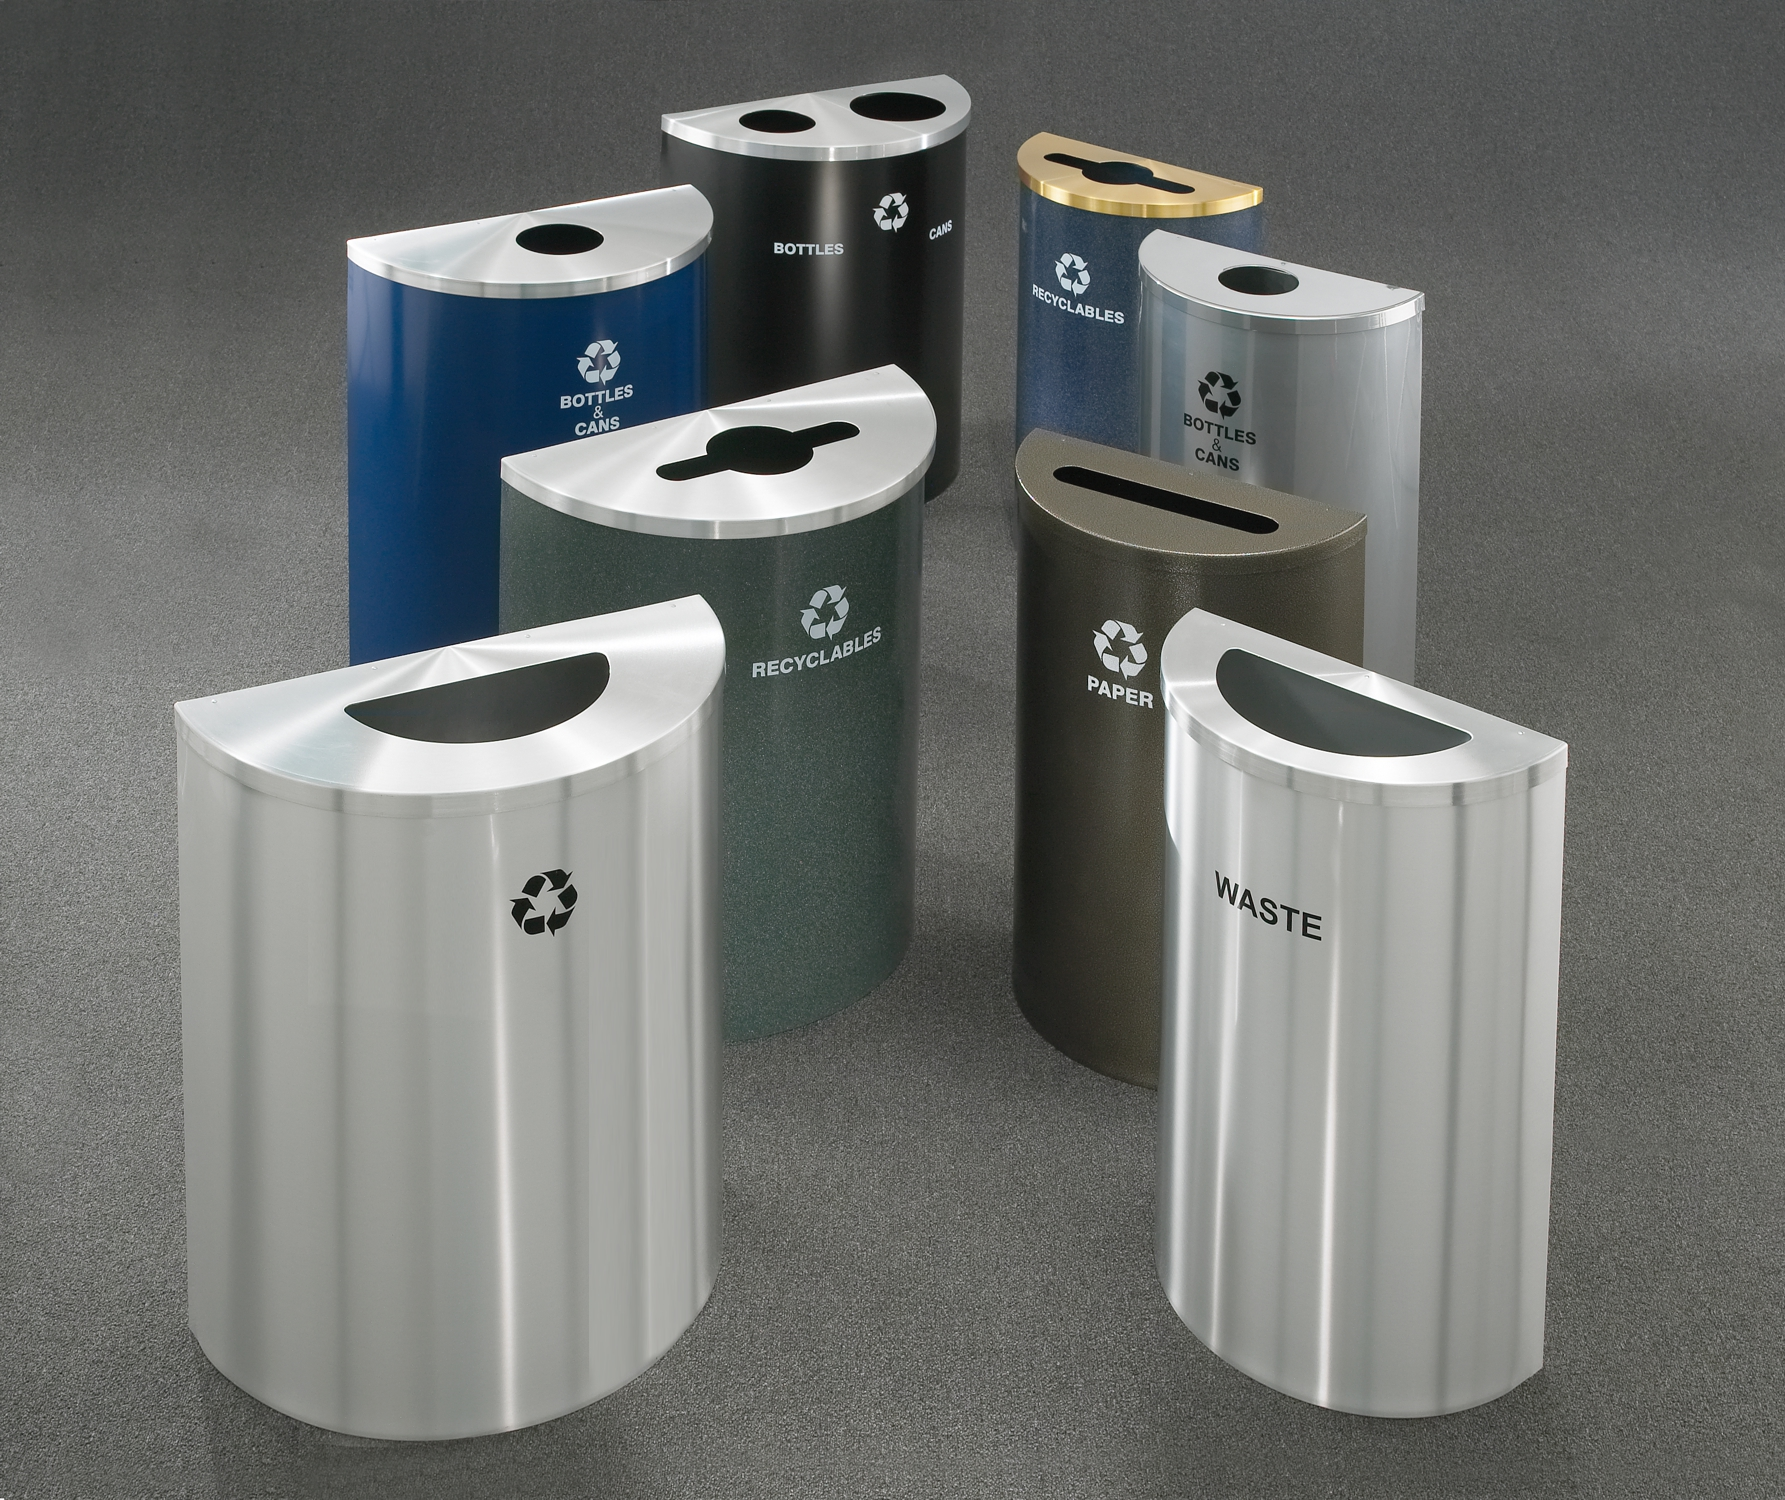 18-inch-and-24-inch-half-round-recycling-trash-cans.jpg